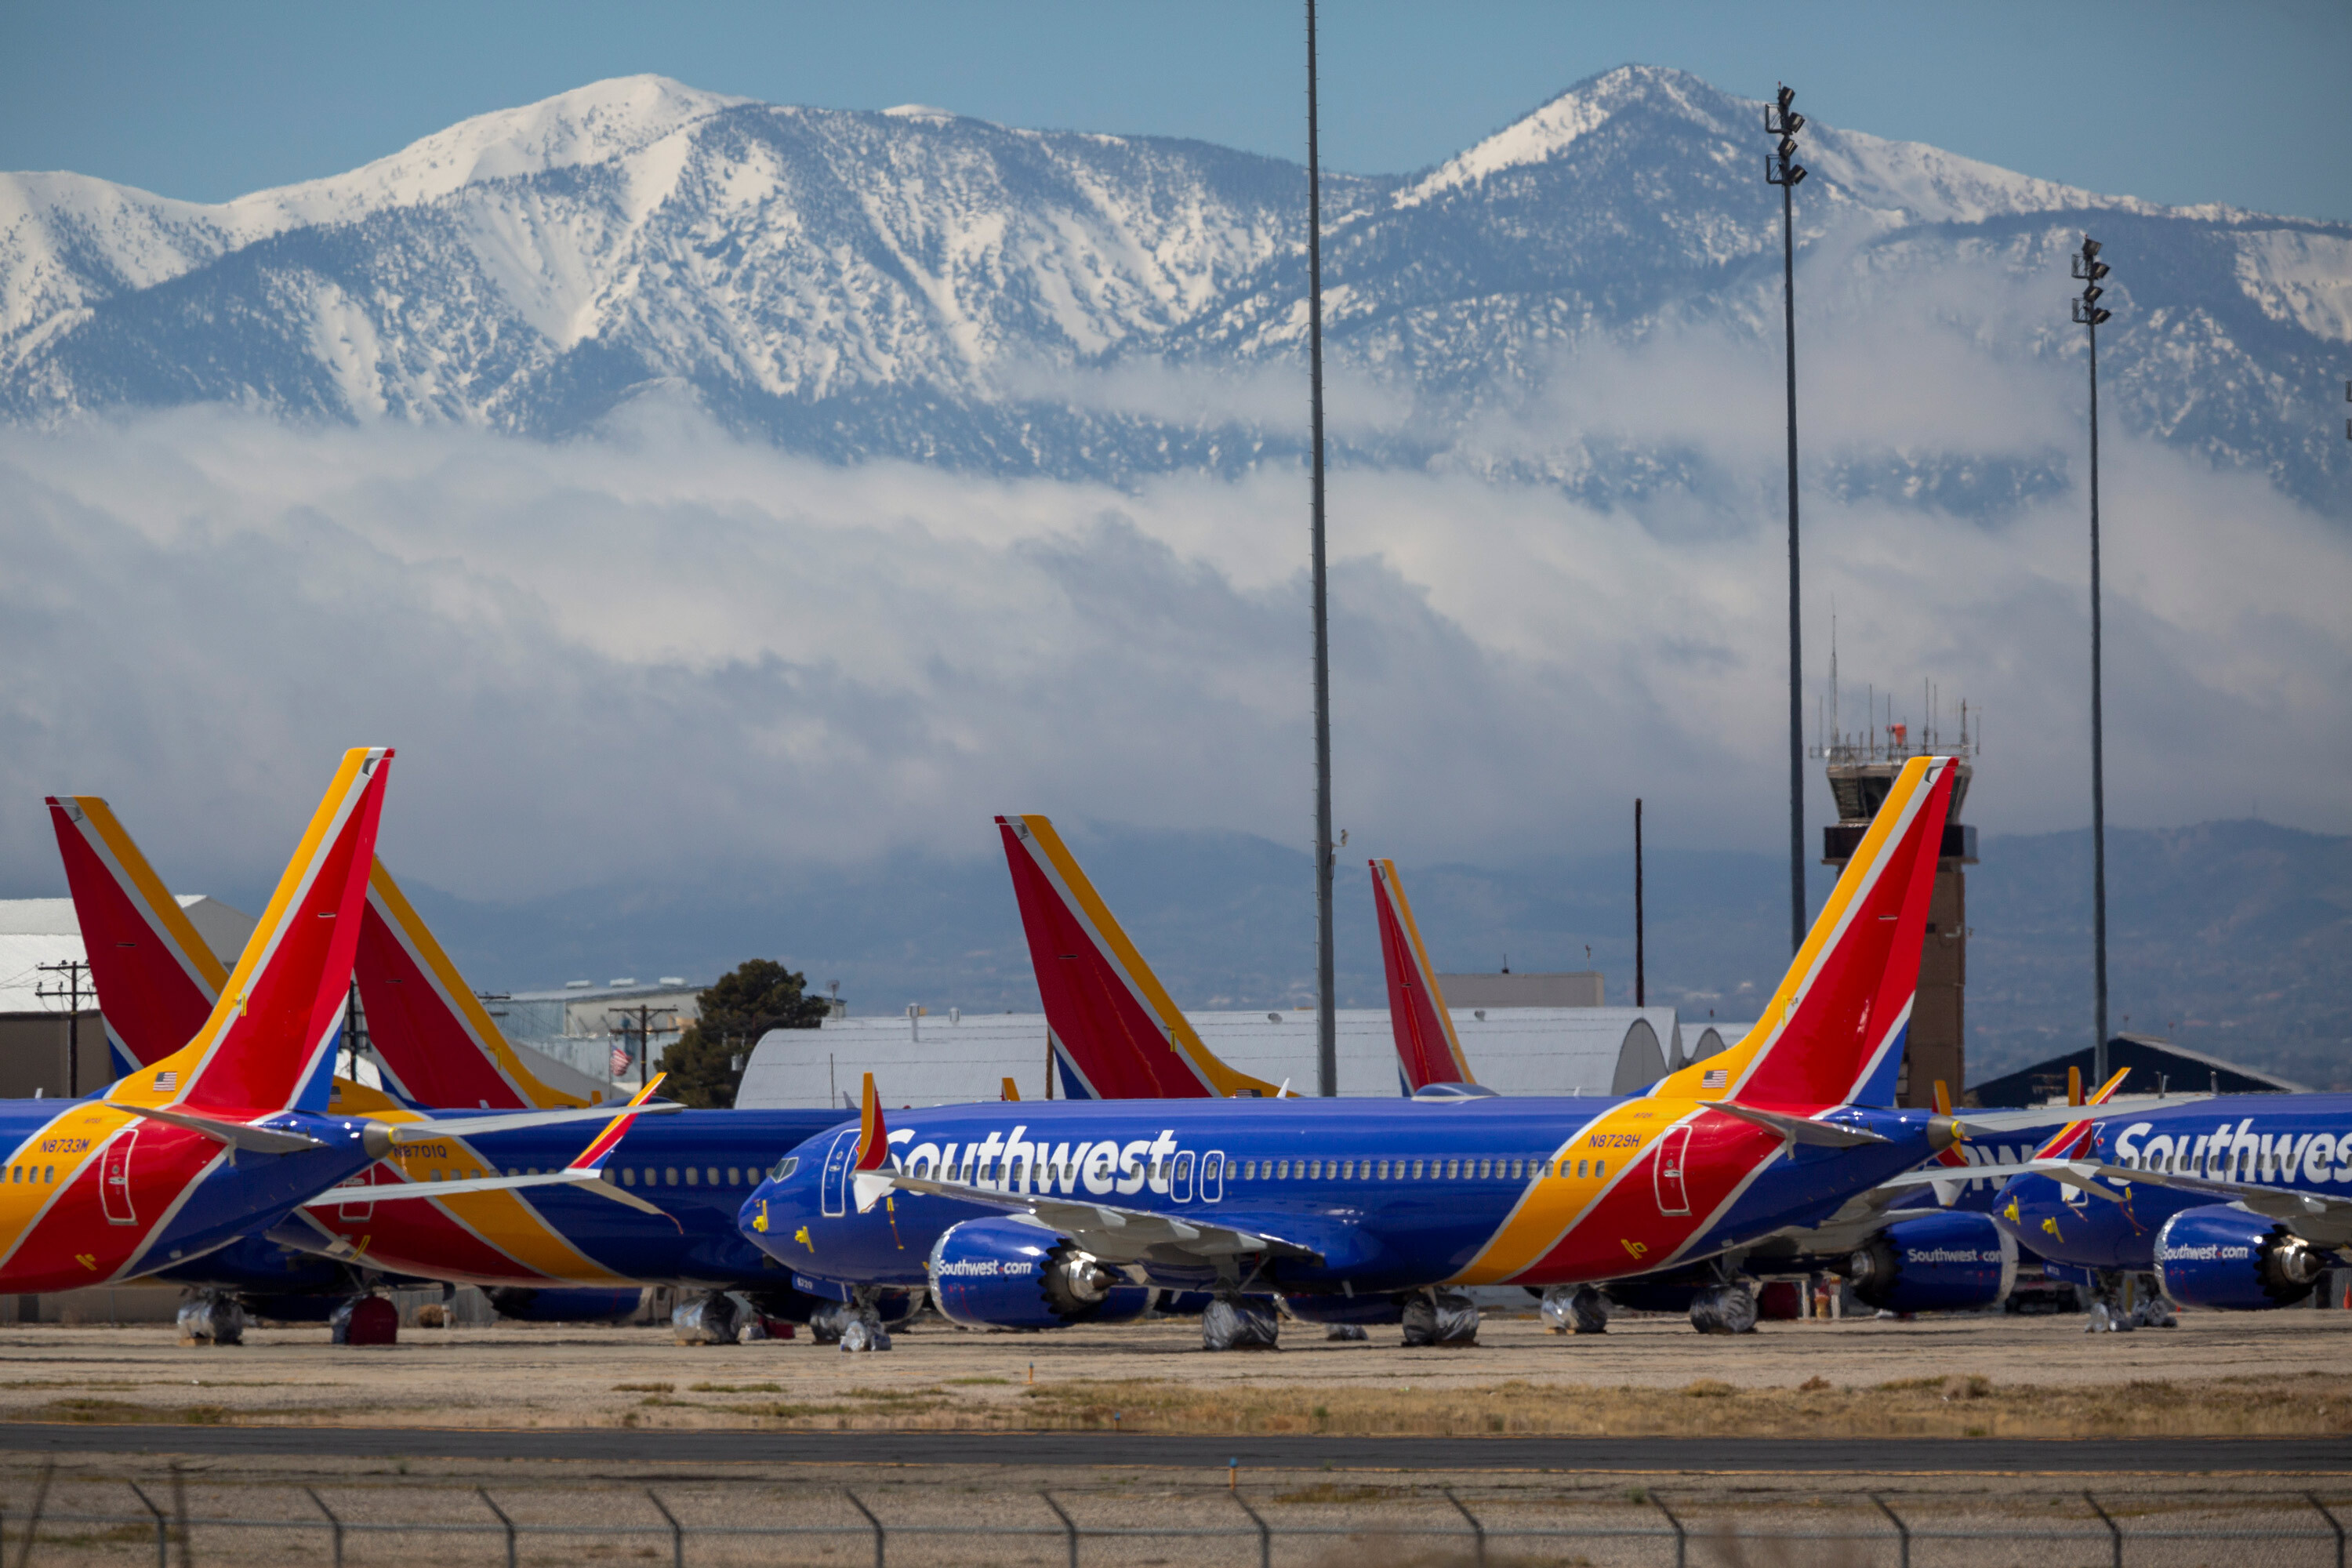 Passenger accused of punching Southwest flight attendant faces federal charges